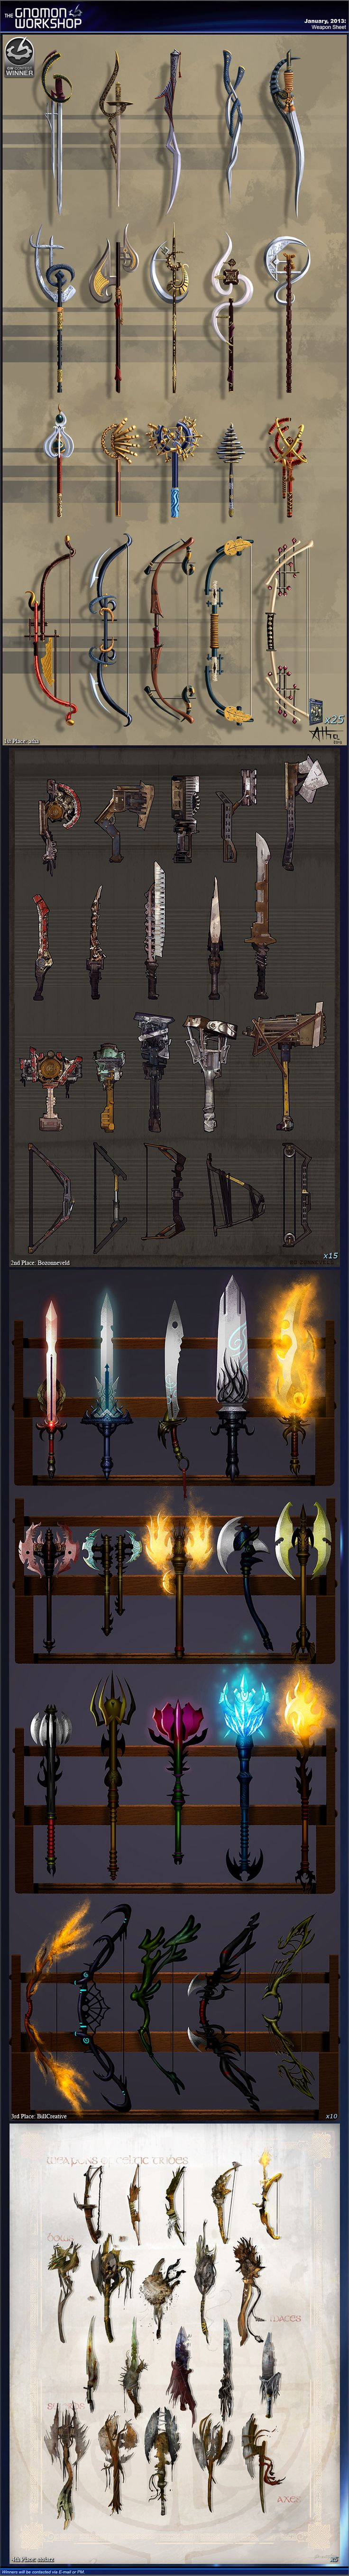 All kinds of Design or Weapons